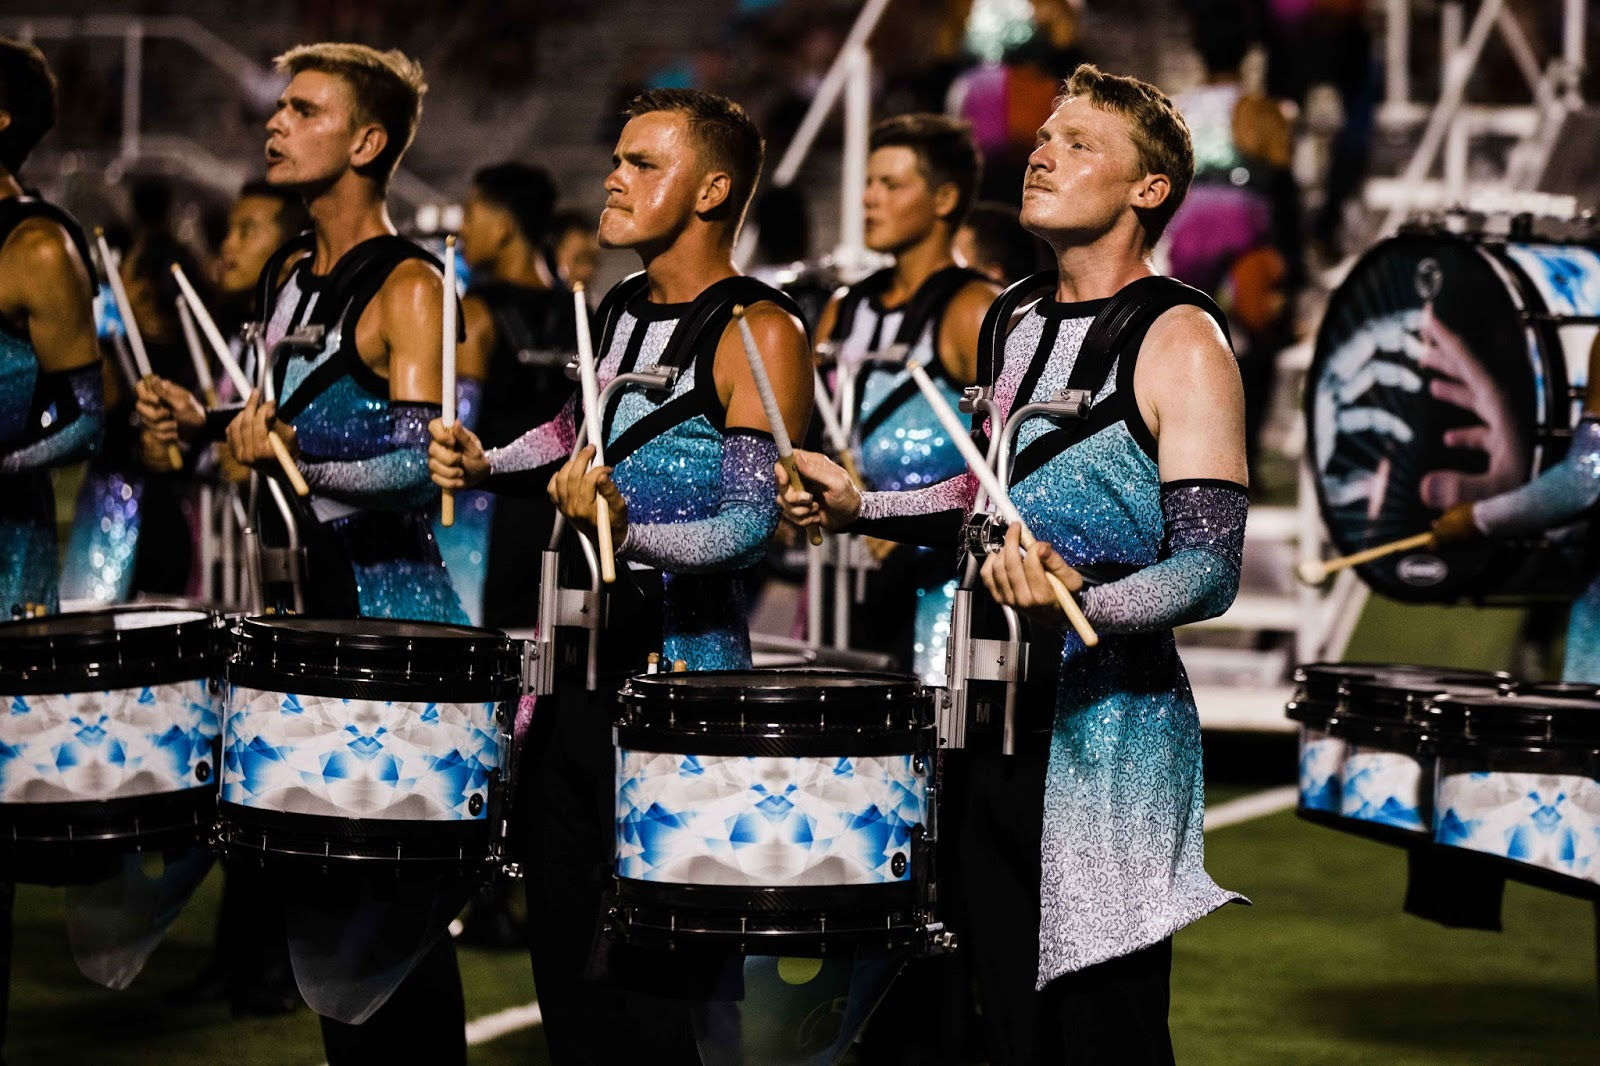 Blue Devils drumline perform at DCI Finals